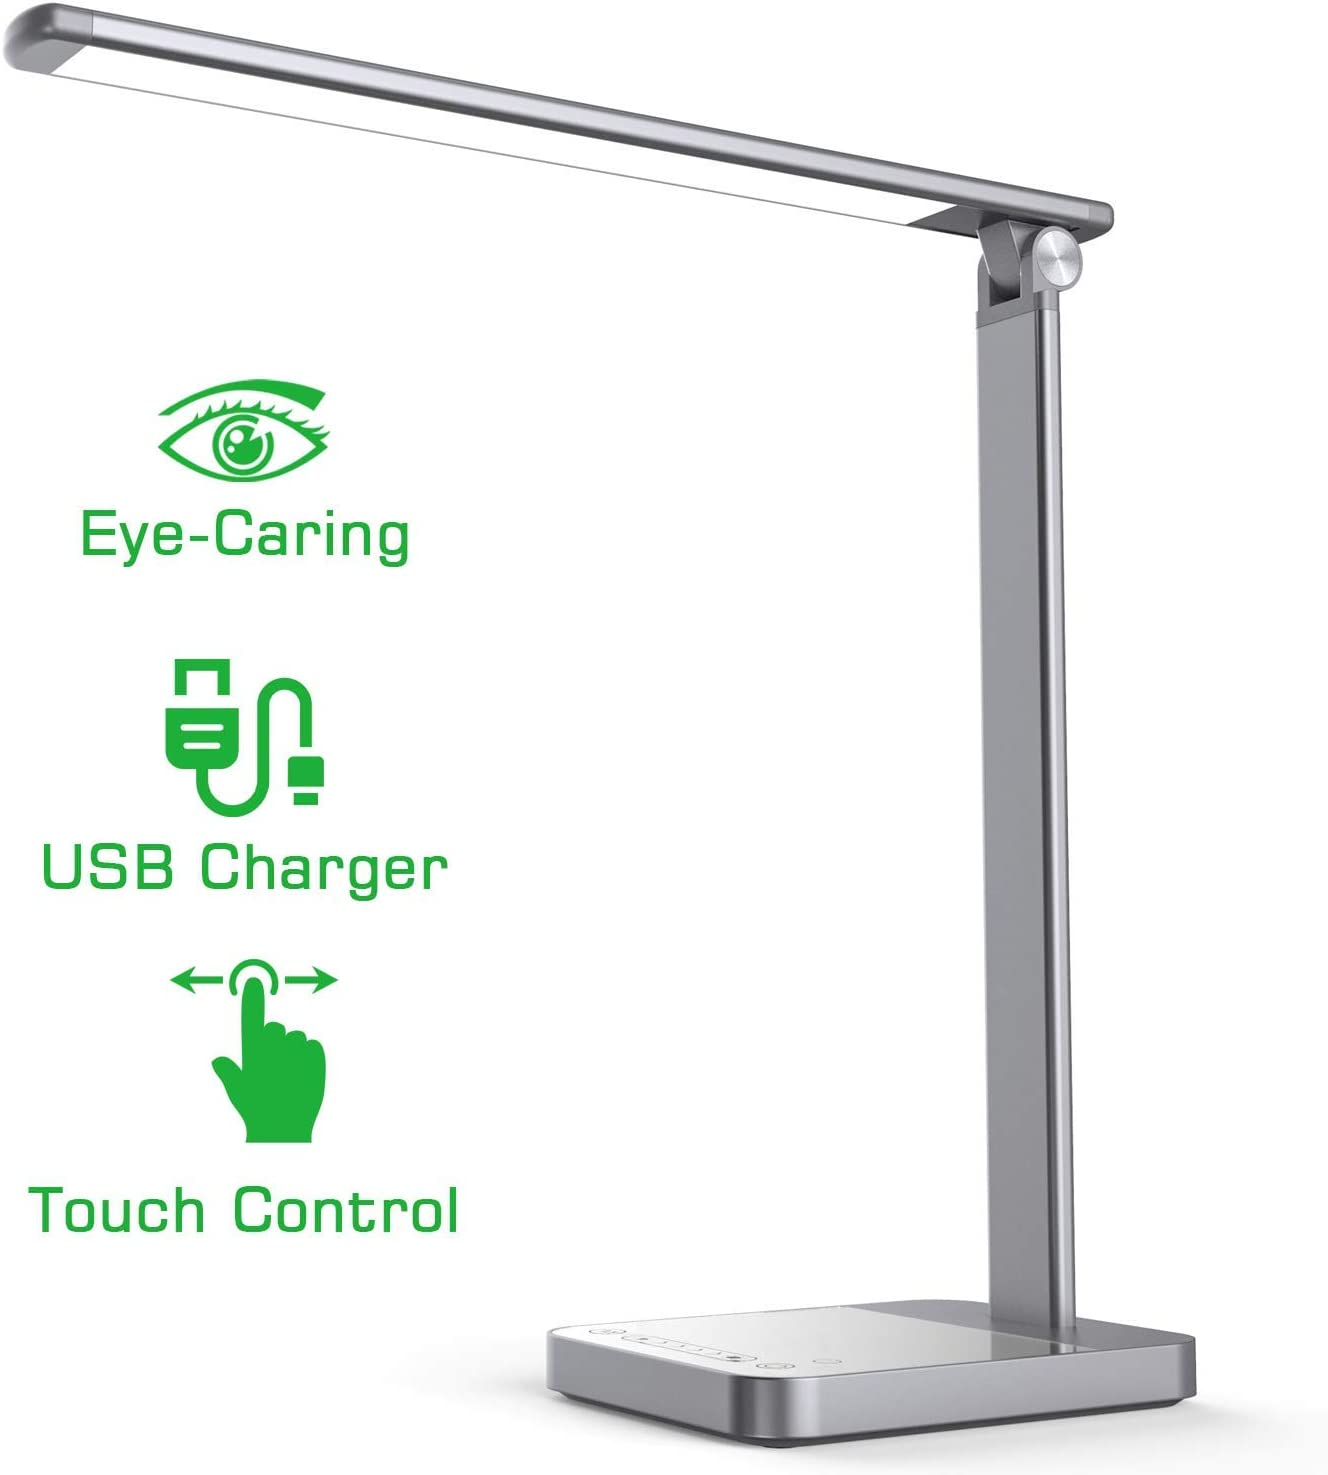 NAPATEK LED Desk Lamp, Eye Caring Table Light Aluminium 3 Color Modes 6 Brightness Levels Touch Control Timer Memory Function USB Port 64 LEDs Office Work Lamp Safe Thermal Design, Space Gray